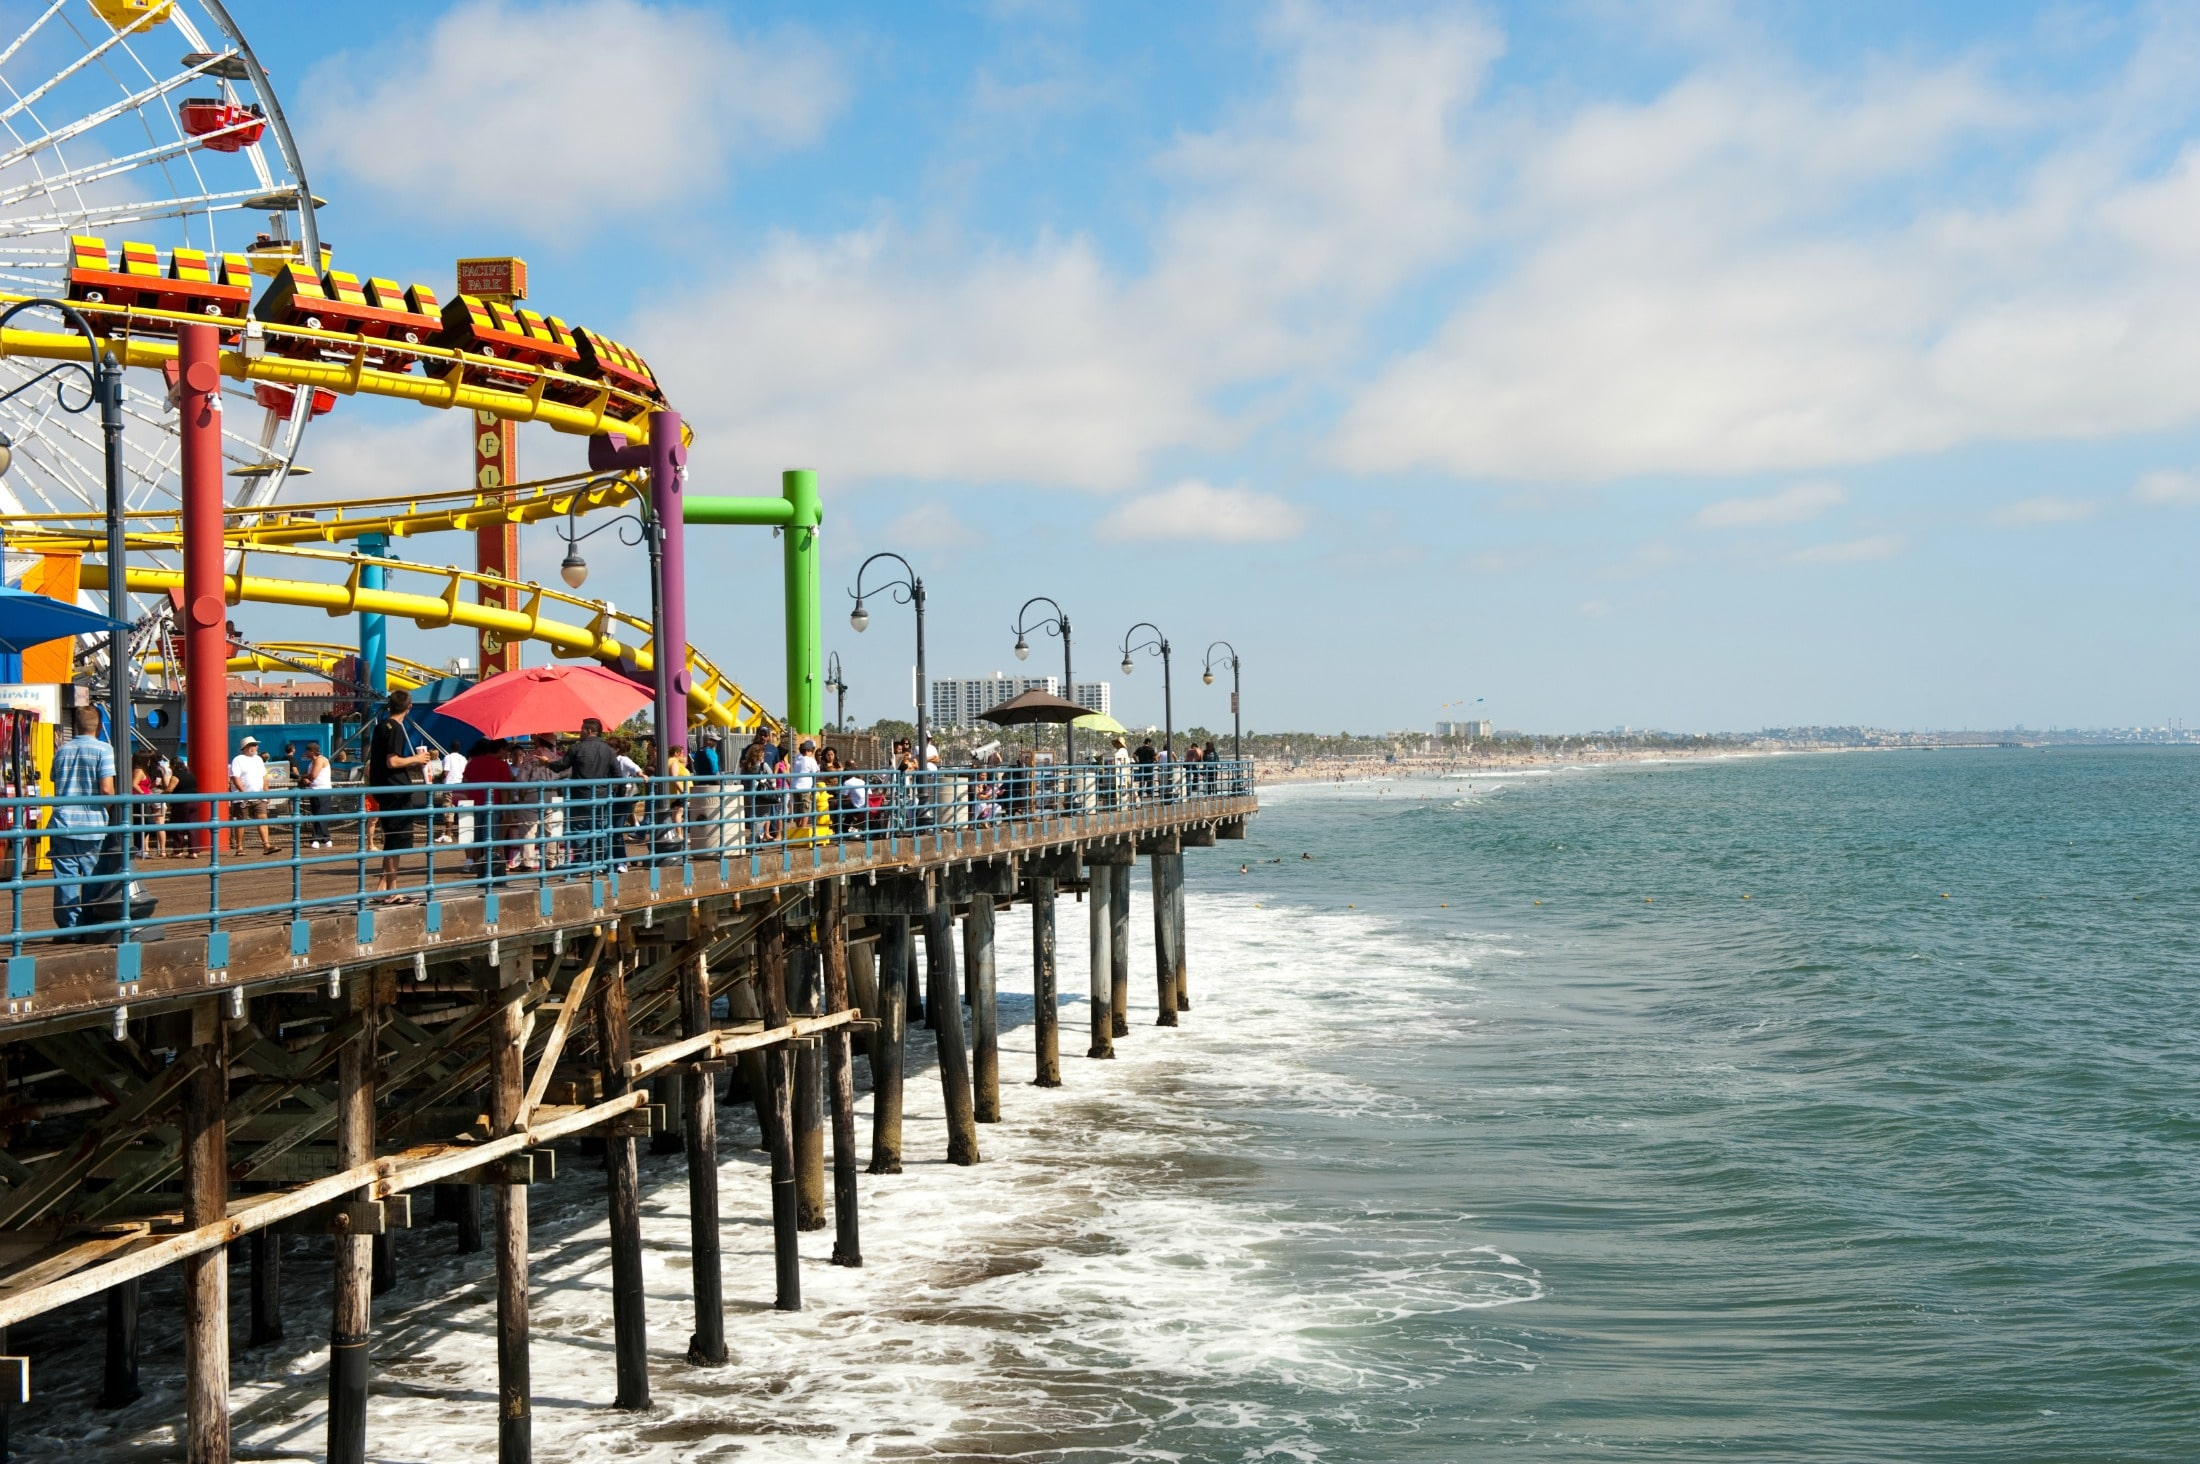 Many family vacations in California happen in Santa Monica on the beach